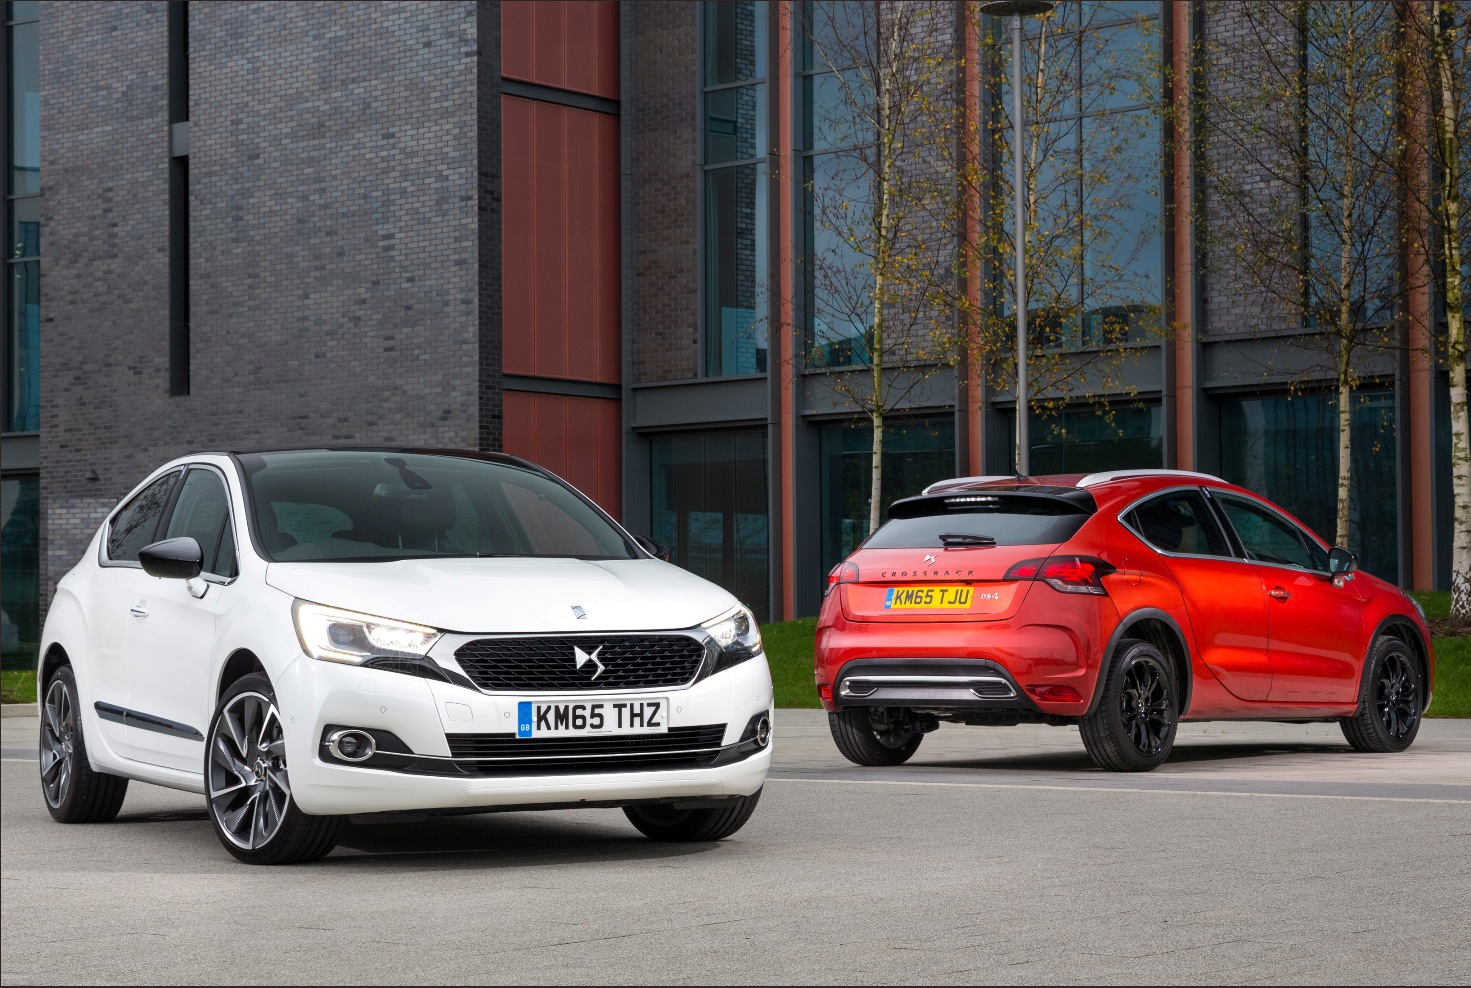 DS 4 new models, Hatchback and Crossback